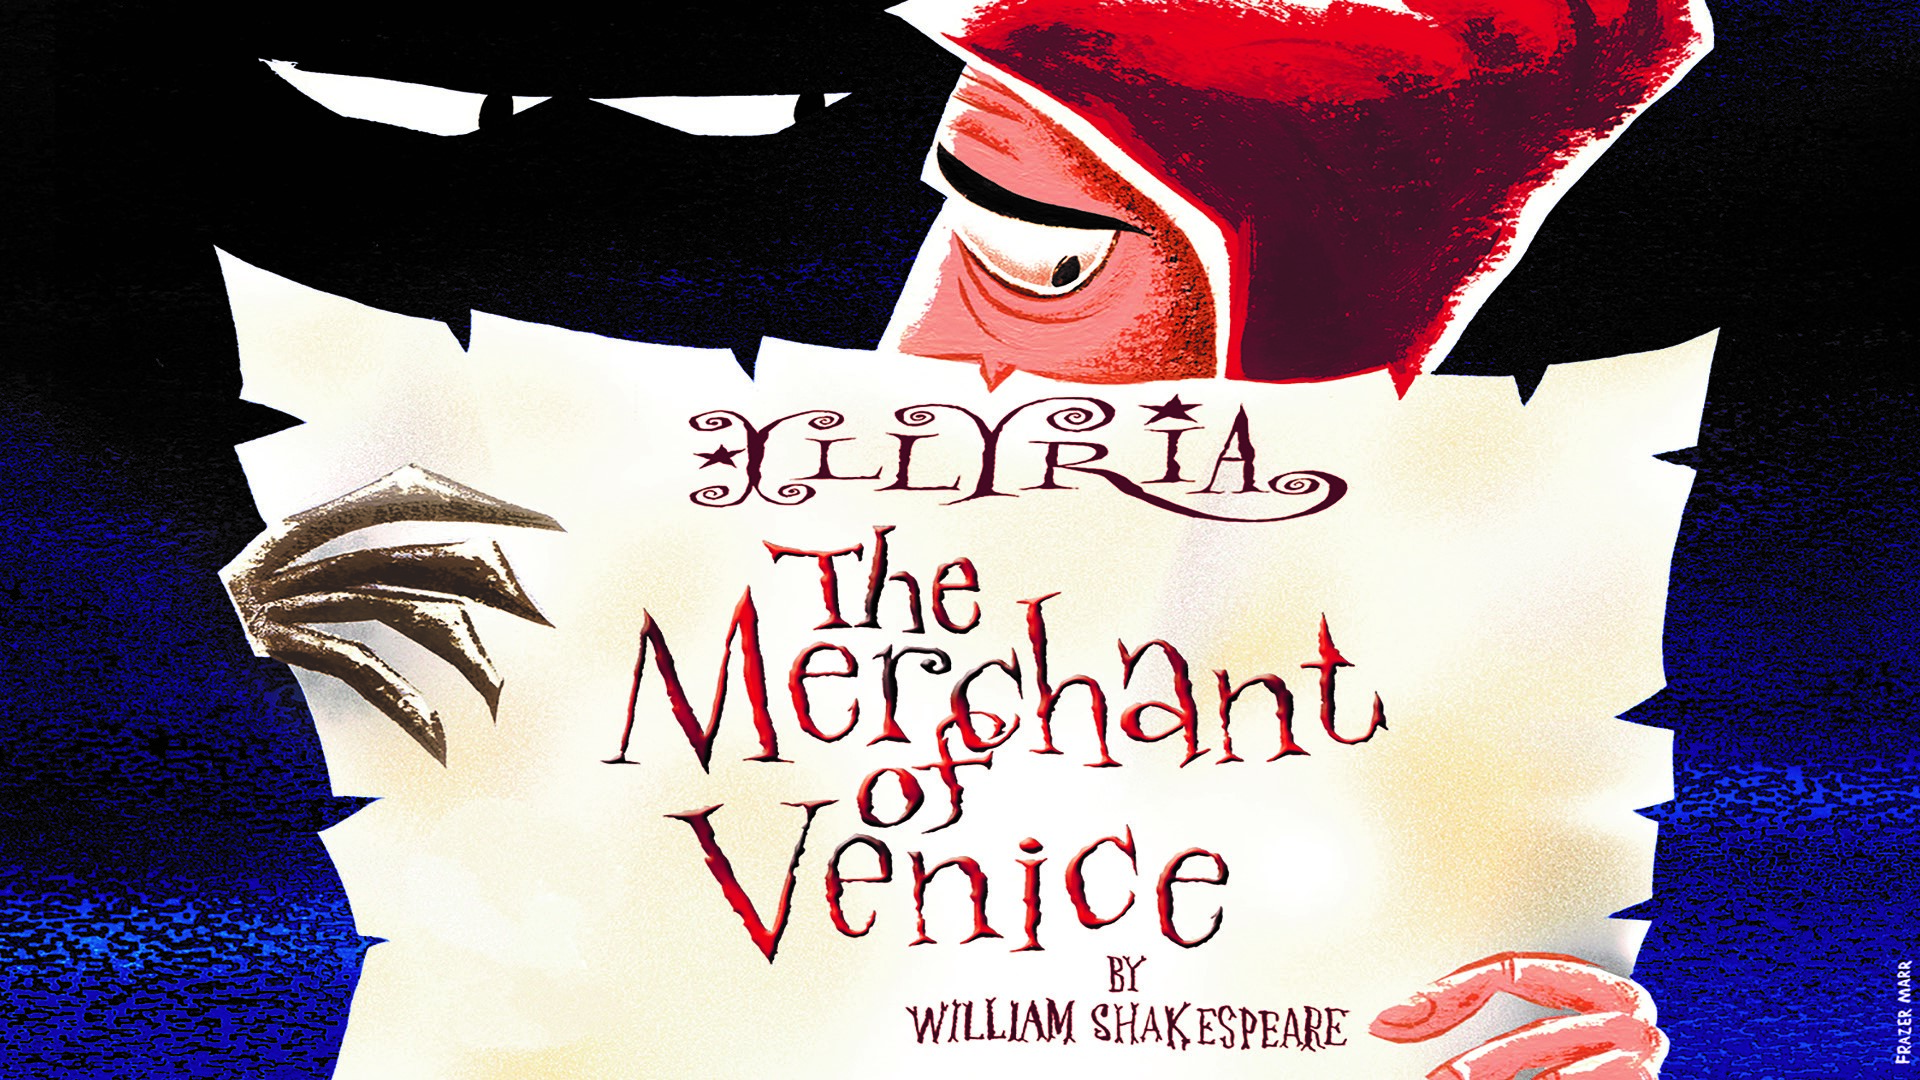 The Merchant Of Venice at Westminster Abbey. Image courtesy of Illyria.